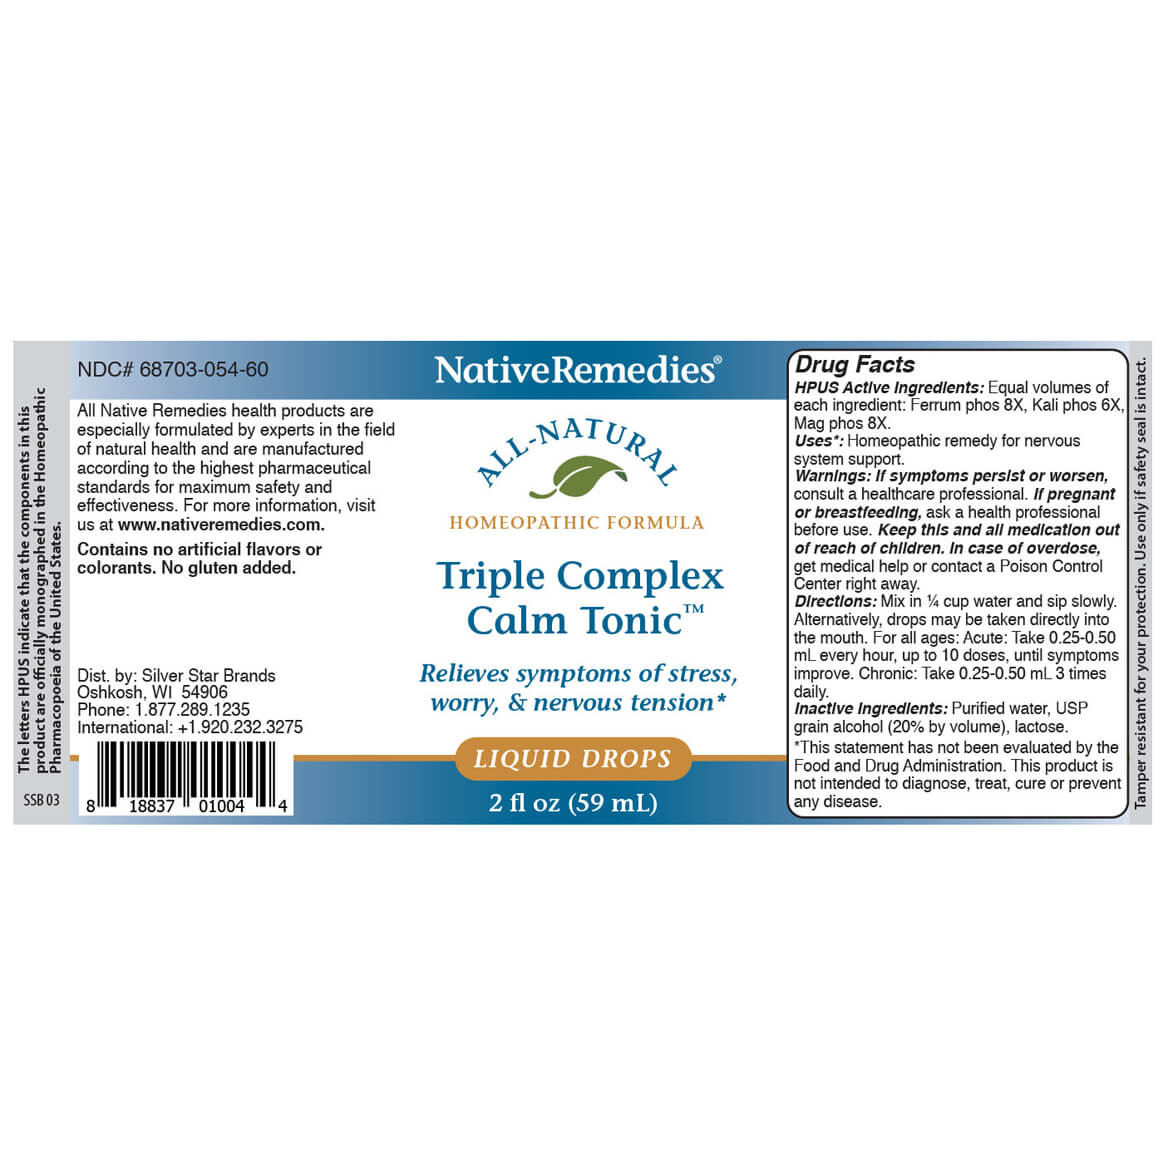 Triple Complex Calm Tonic™ For Routine Anxiety-351841